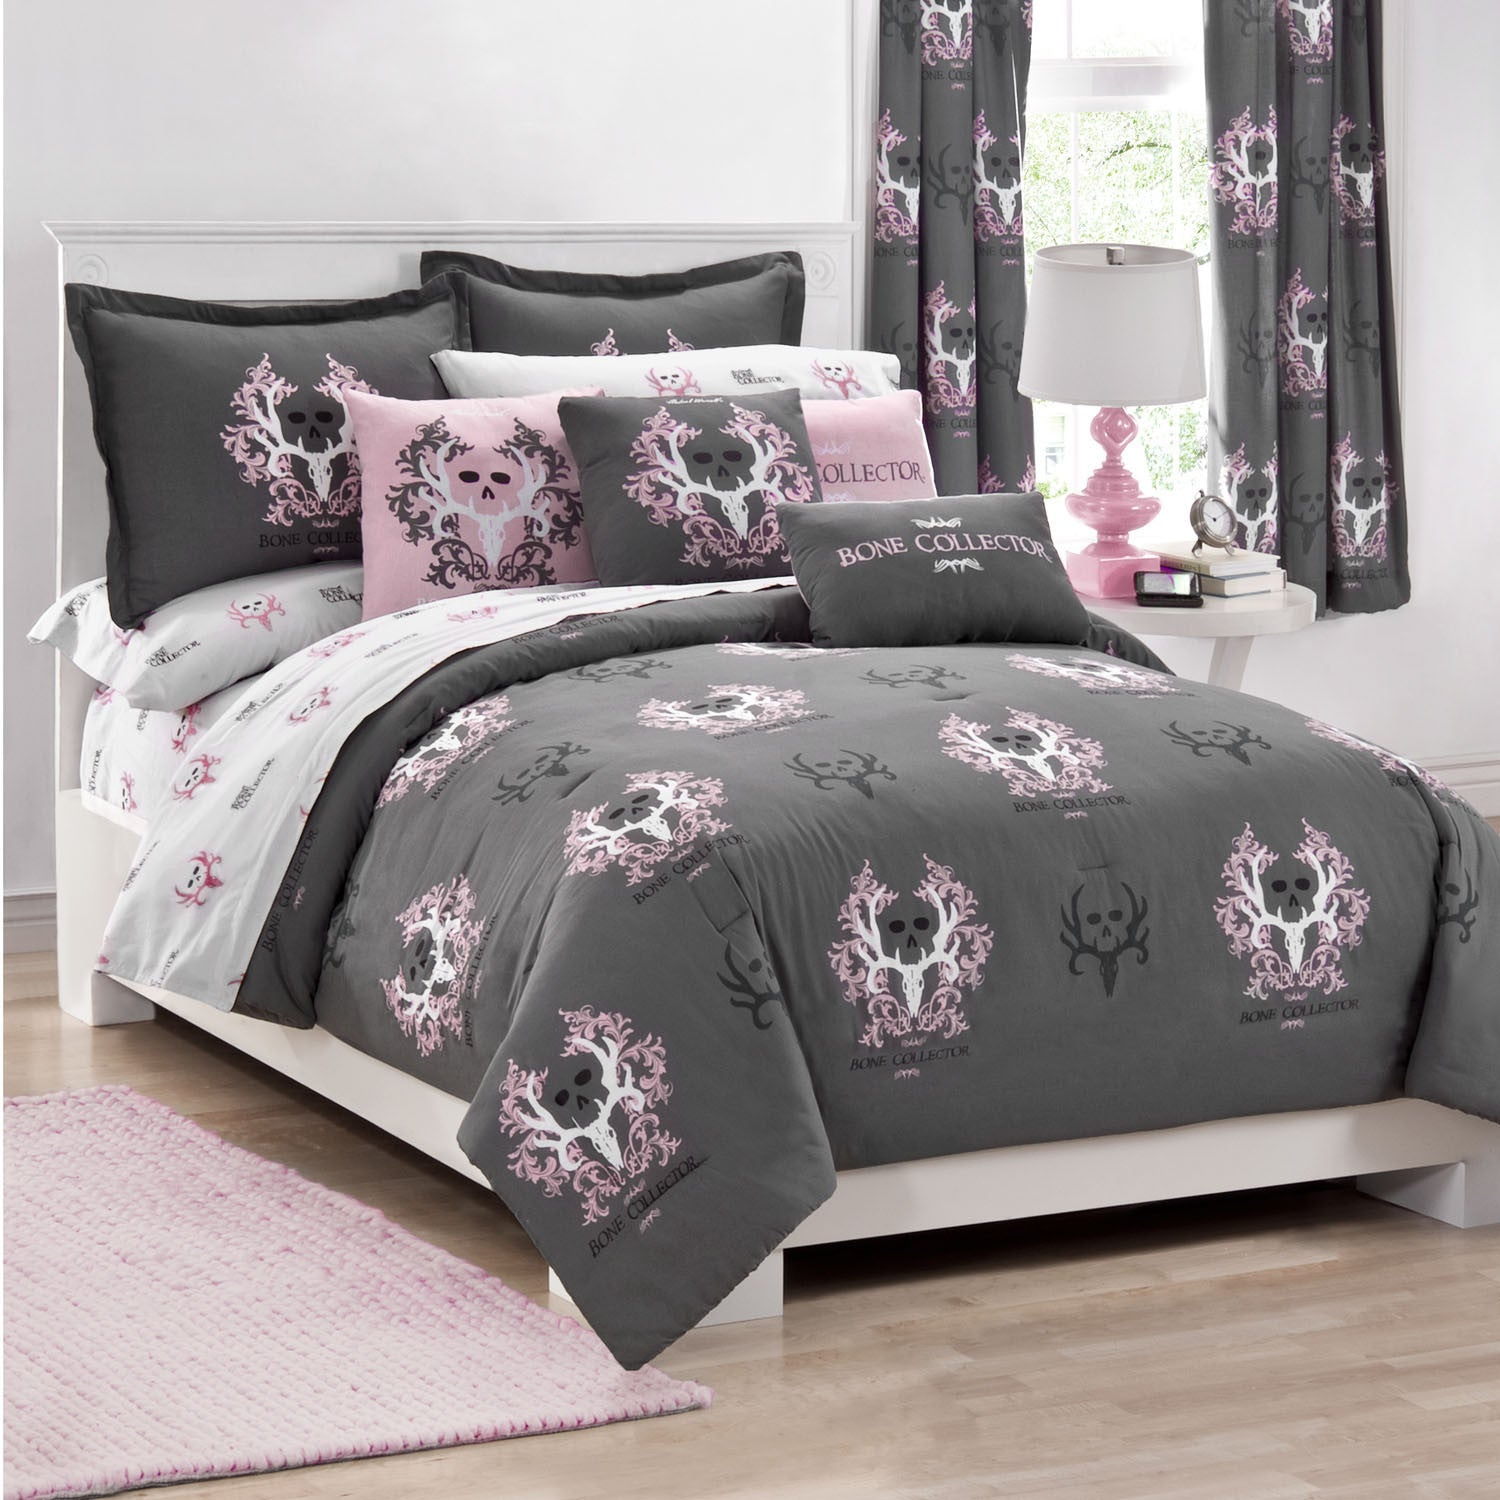 Bone Collector Pink Comforter/Sham Set  Full - Back40Trading2